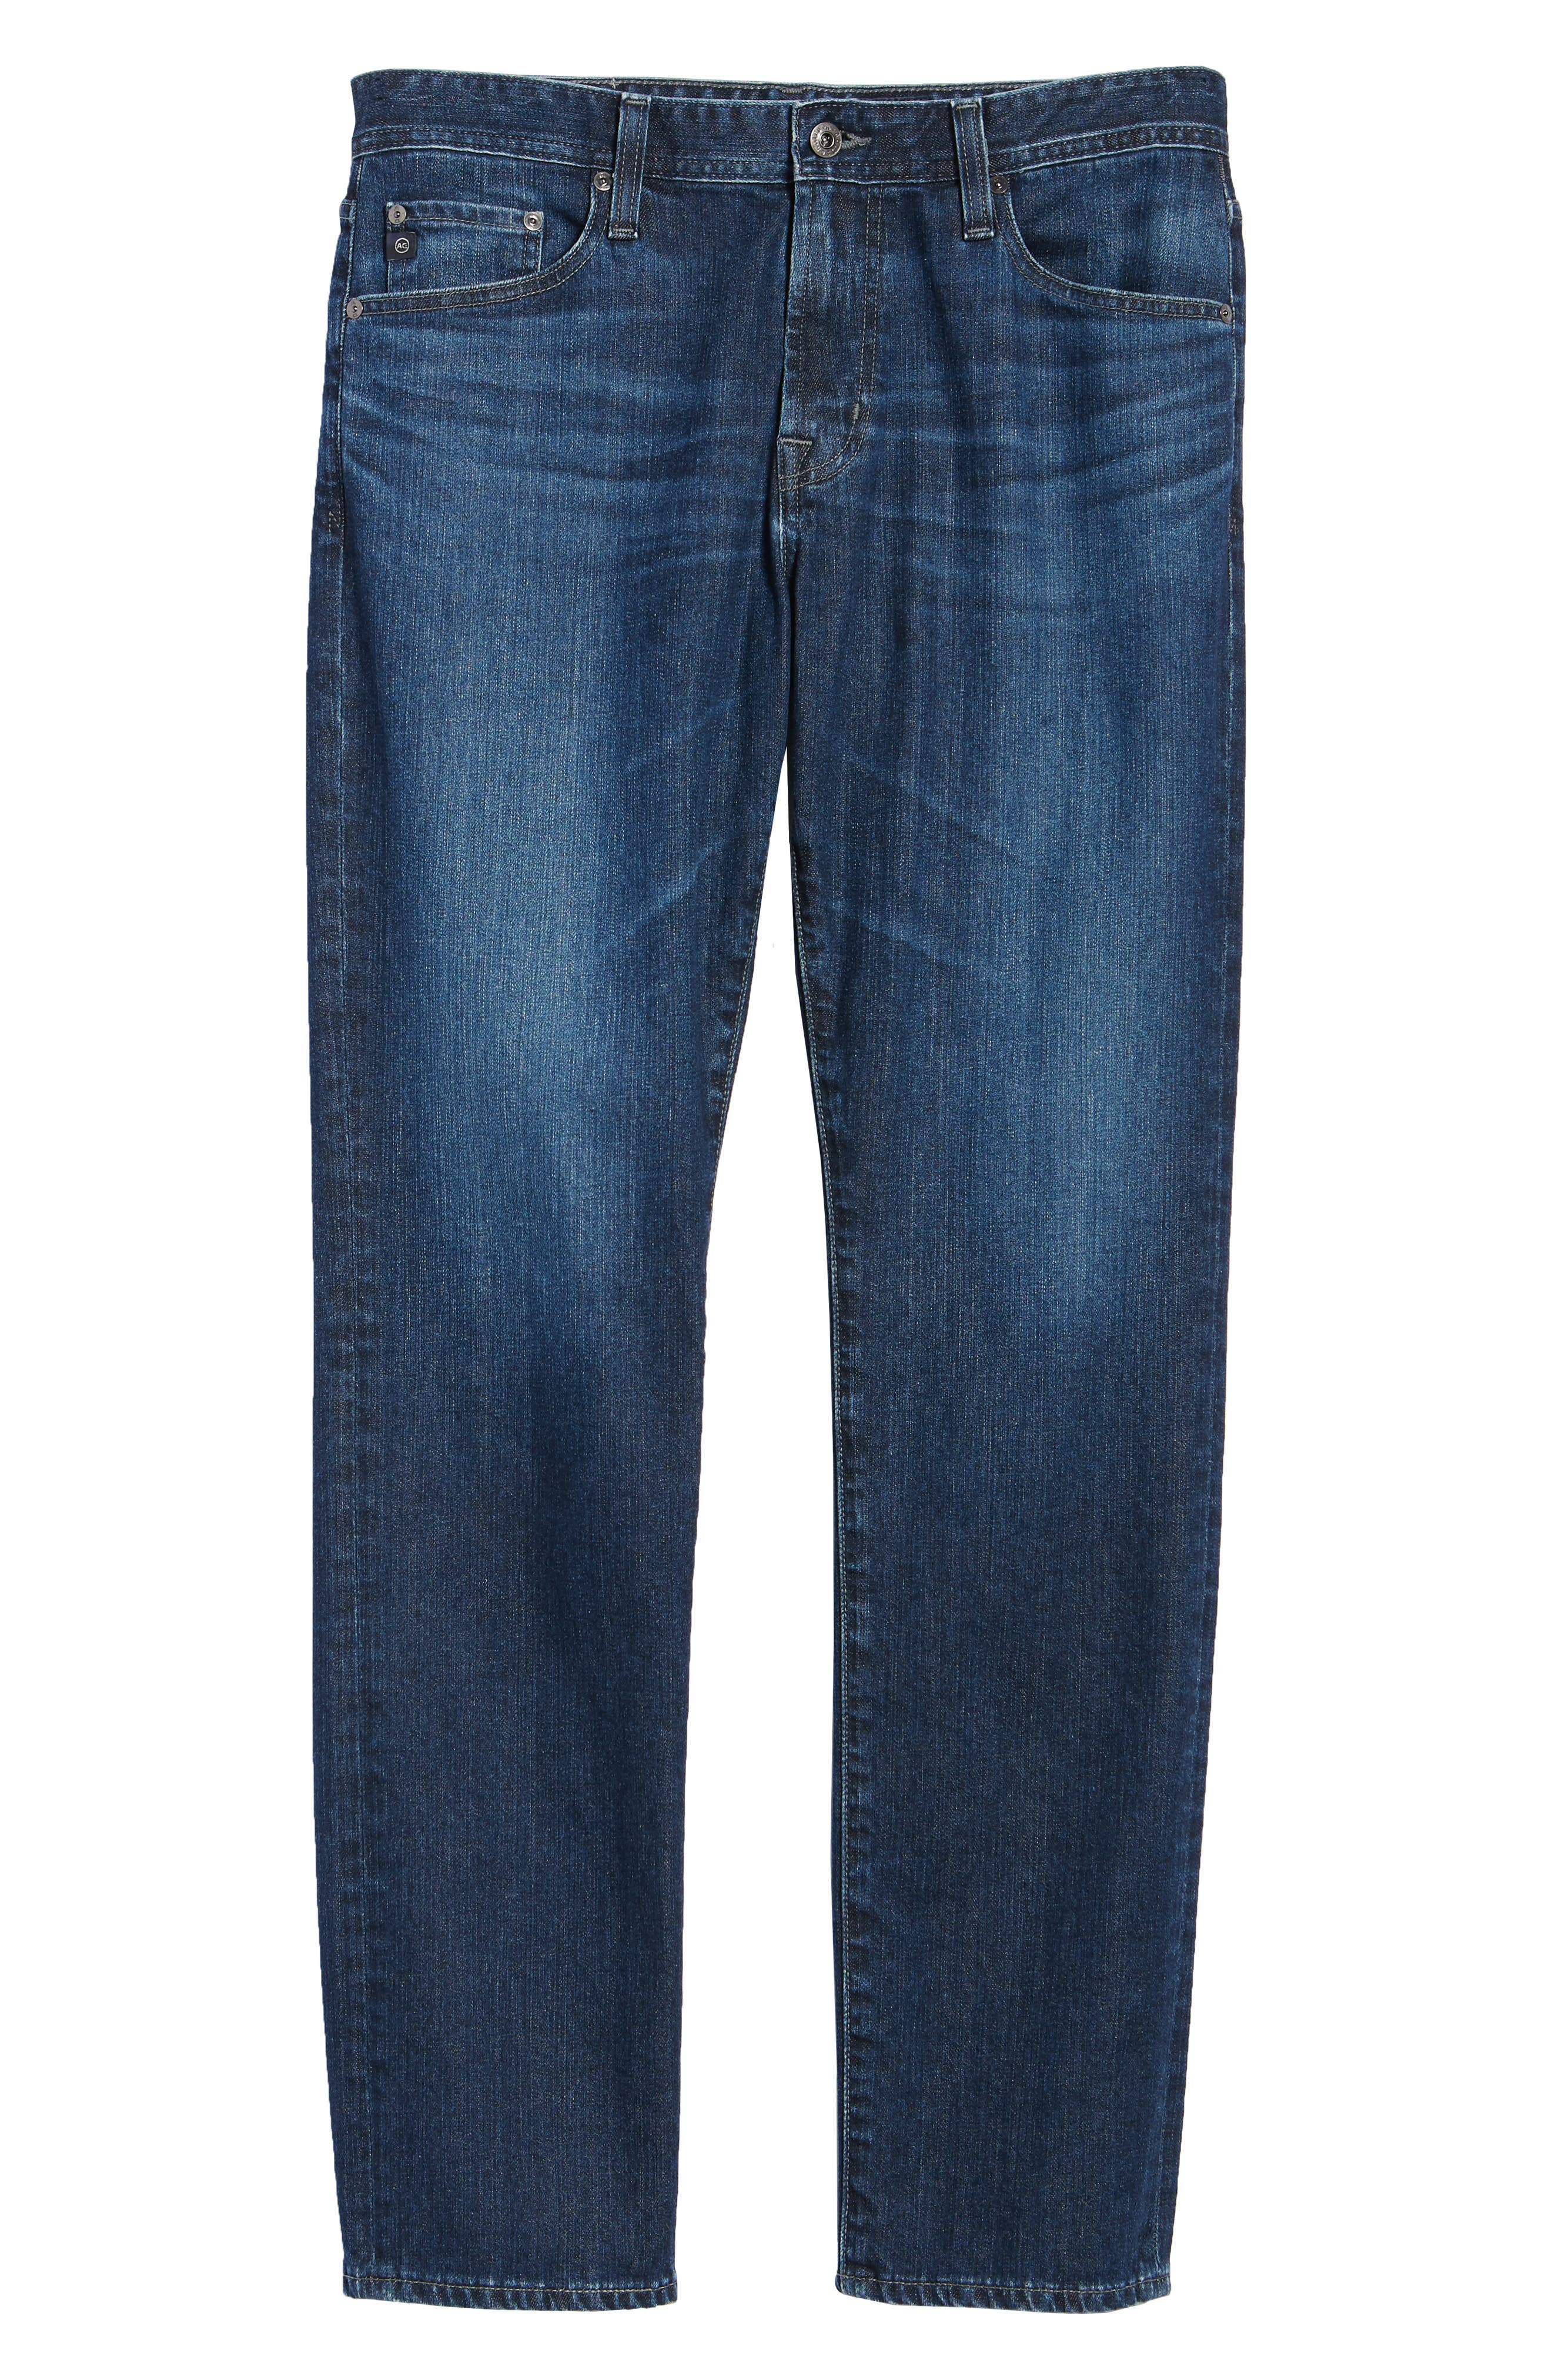 Ives Straight Leg Jeans,                             Alternate thumbnail 6, color,                             Lakeview